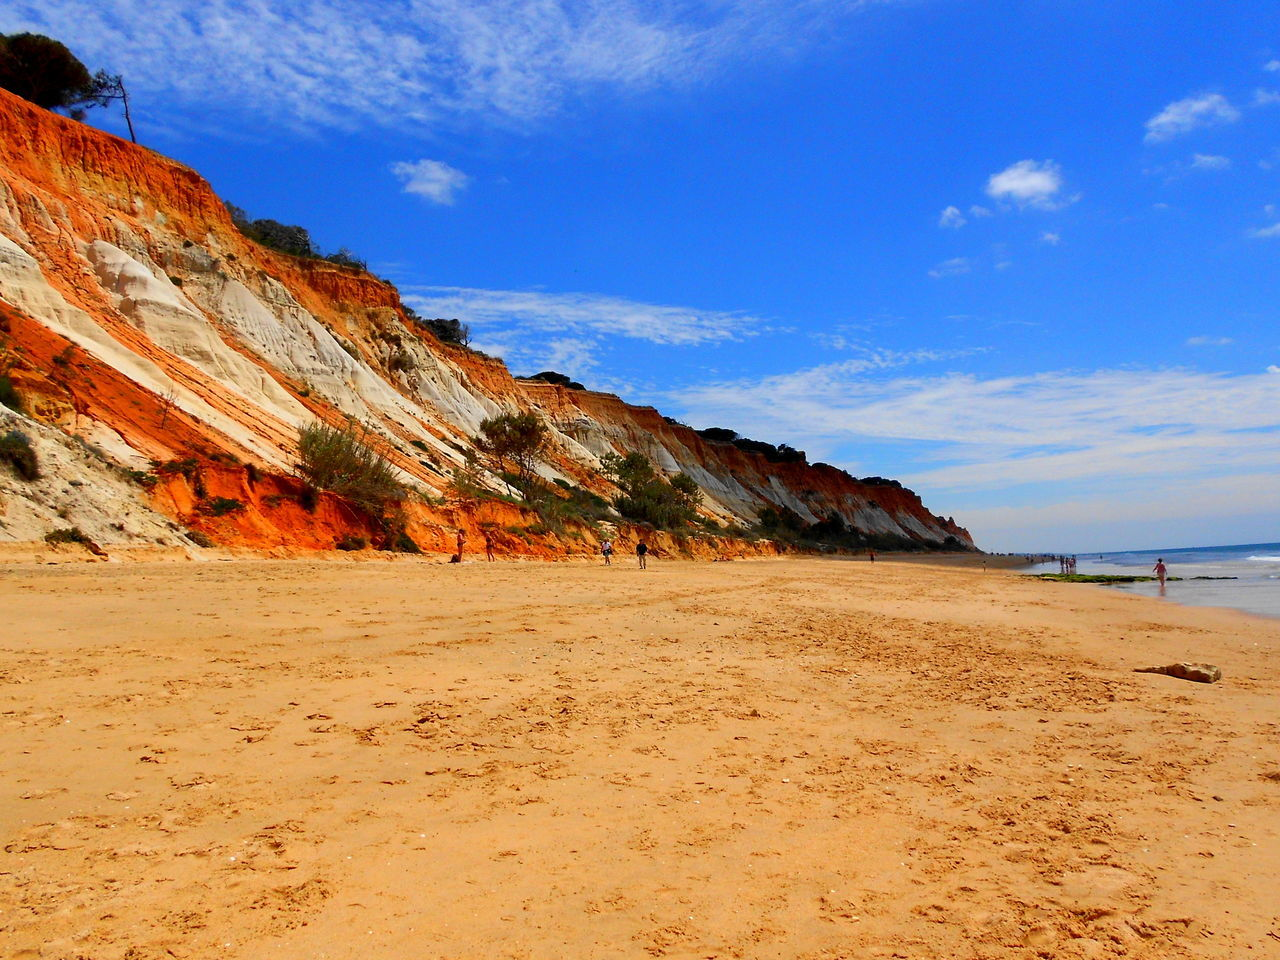 beauty in nature, sand, scenics, nature, beach, tranquil scene, tranquility, sea, day, outdoors, sky, blue, water, no people